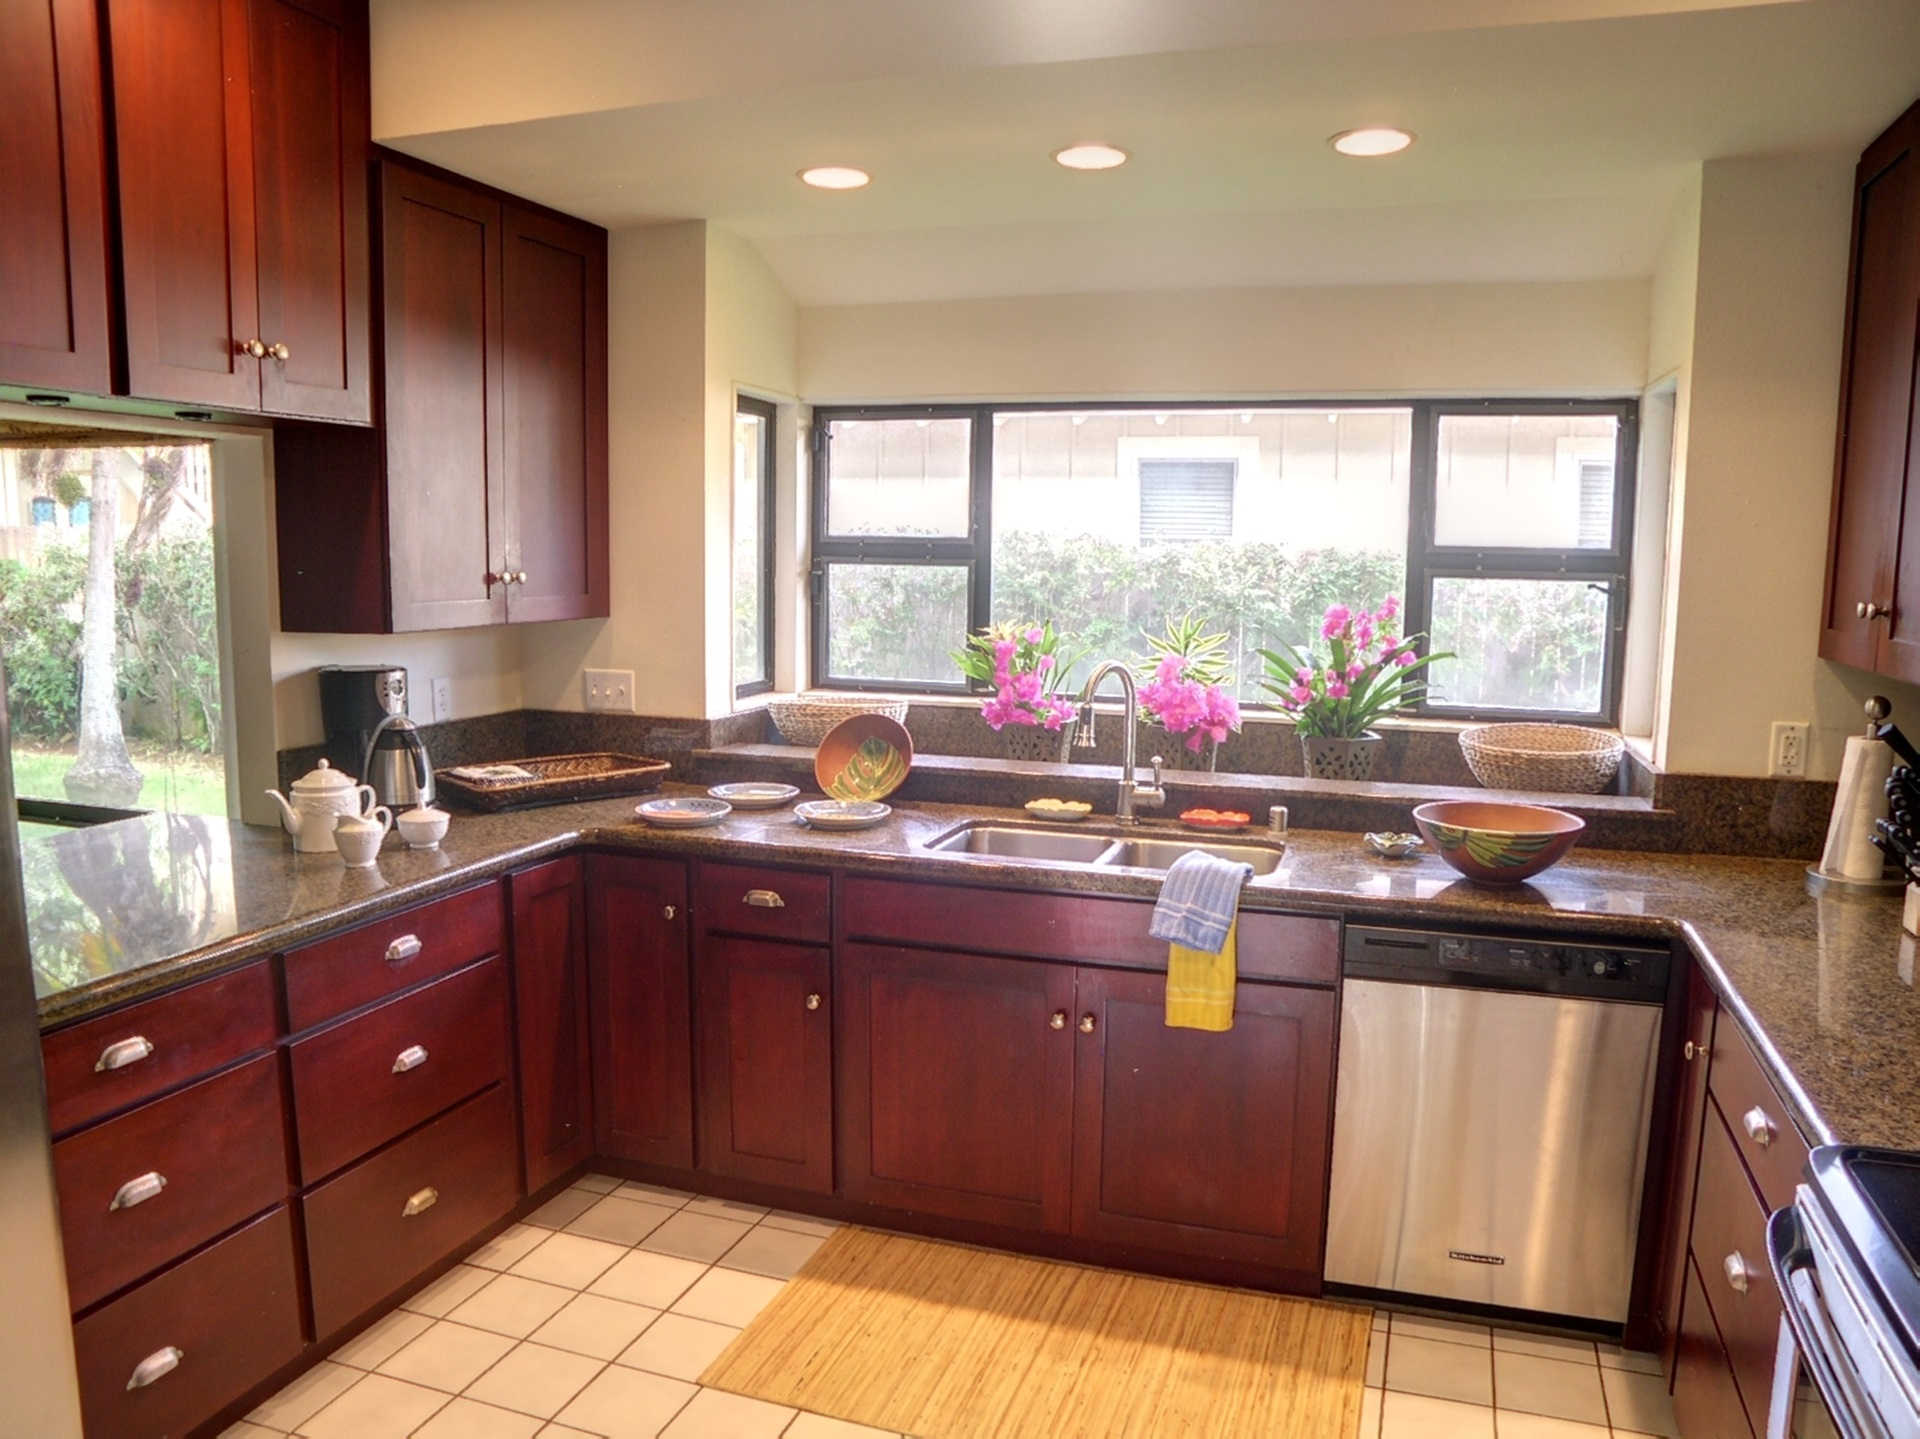 The kitchen is equipped with all you will need to create your island inspired culinary delights. Visit with friends in the family room via the convenient pass-through, or in the dining room just across the hall. You can keep an eye on the kids in the hot